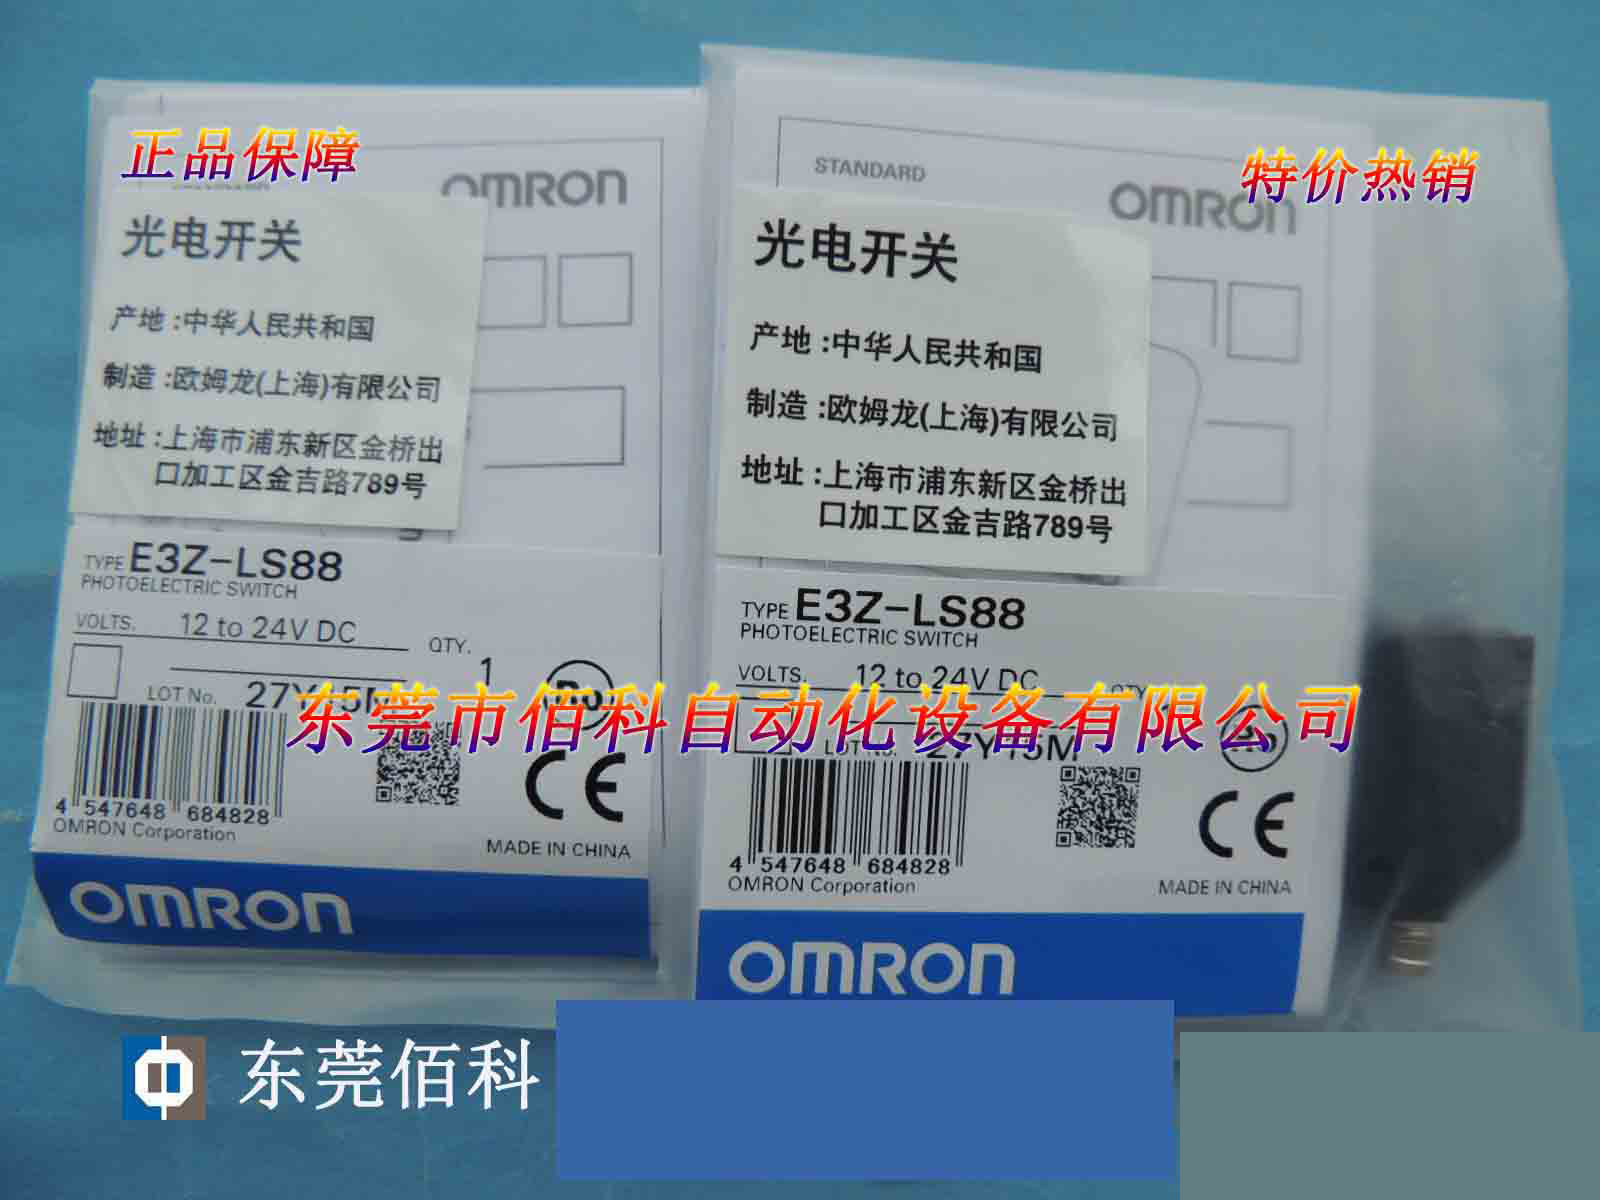 Special price new original Omron photoelectric switch E3Z-LS88Special price new original Omron photoelectric switch E3Z-LS88